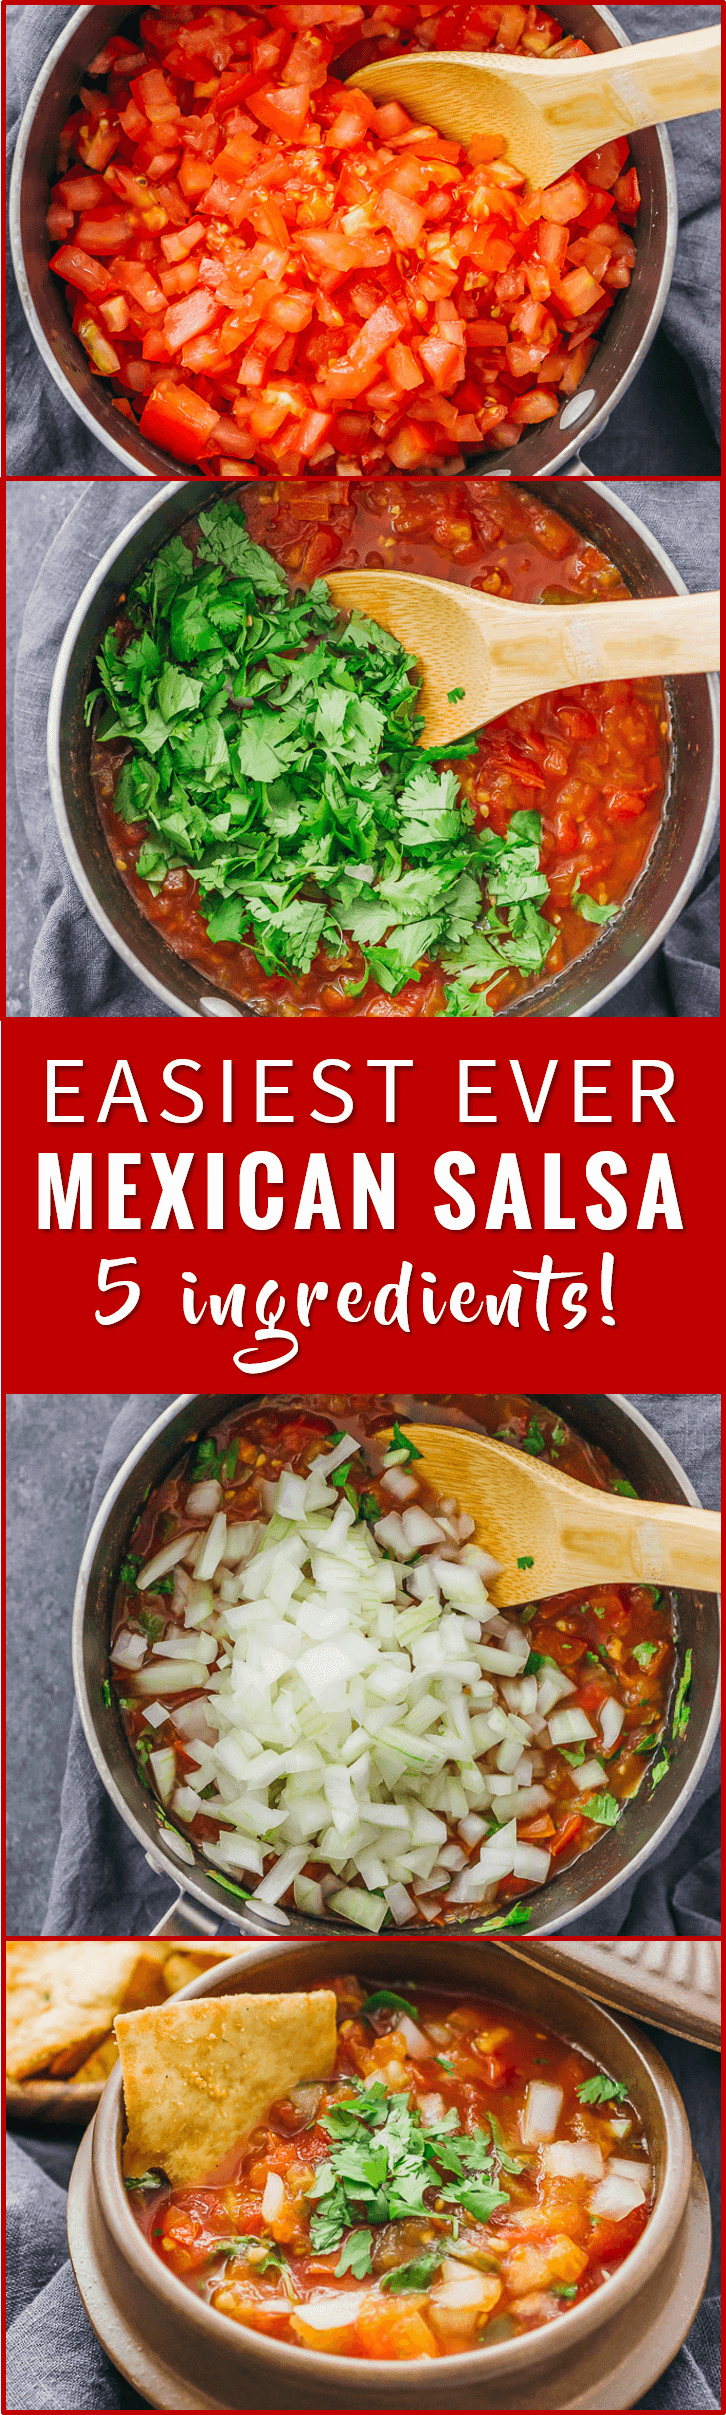 Mexican salsa doesn't get easier than this: you only need 5 ingredients to make this fresh, chunky, and spicy tomato salsa recipe. homemade, canning, fruit, fresh, restaurant, easy, roja, chilis, pico de gallo, pico de galo, spicy, chunky, dip, mexicanas, authentic, tomatoes, chipotle, best, red, hot, home made, bar, rezepte, freezer, mild, fresca, garden, healthy, sauce